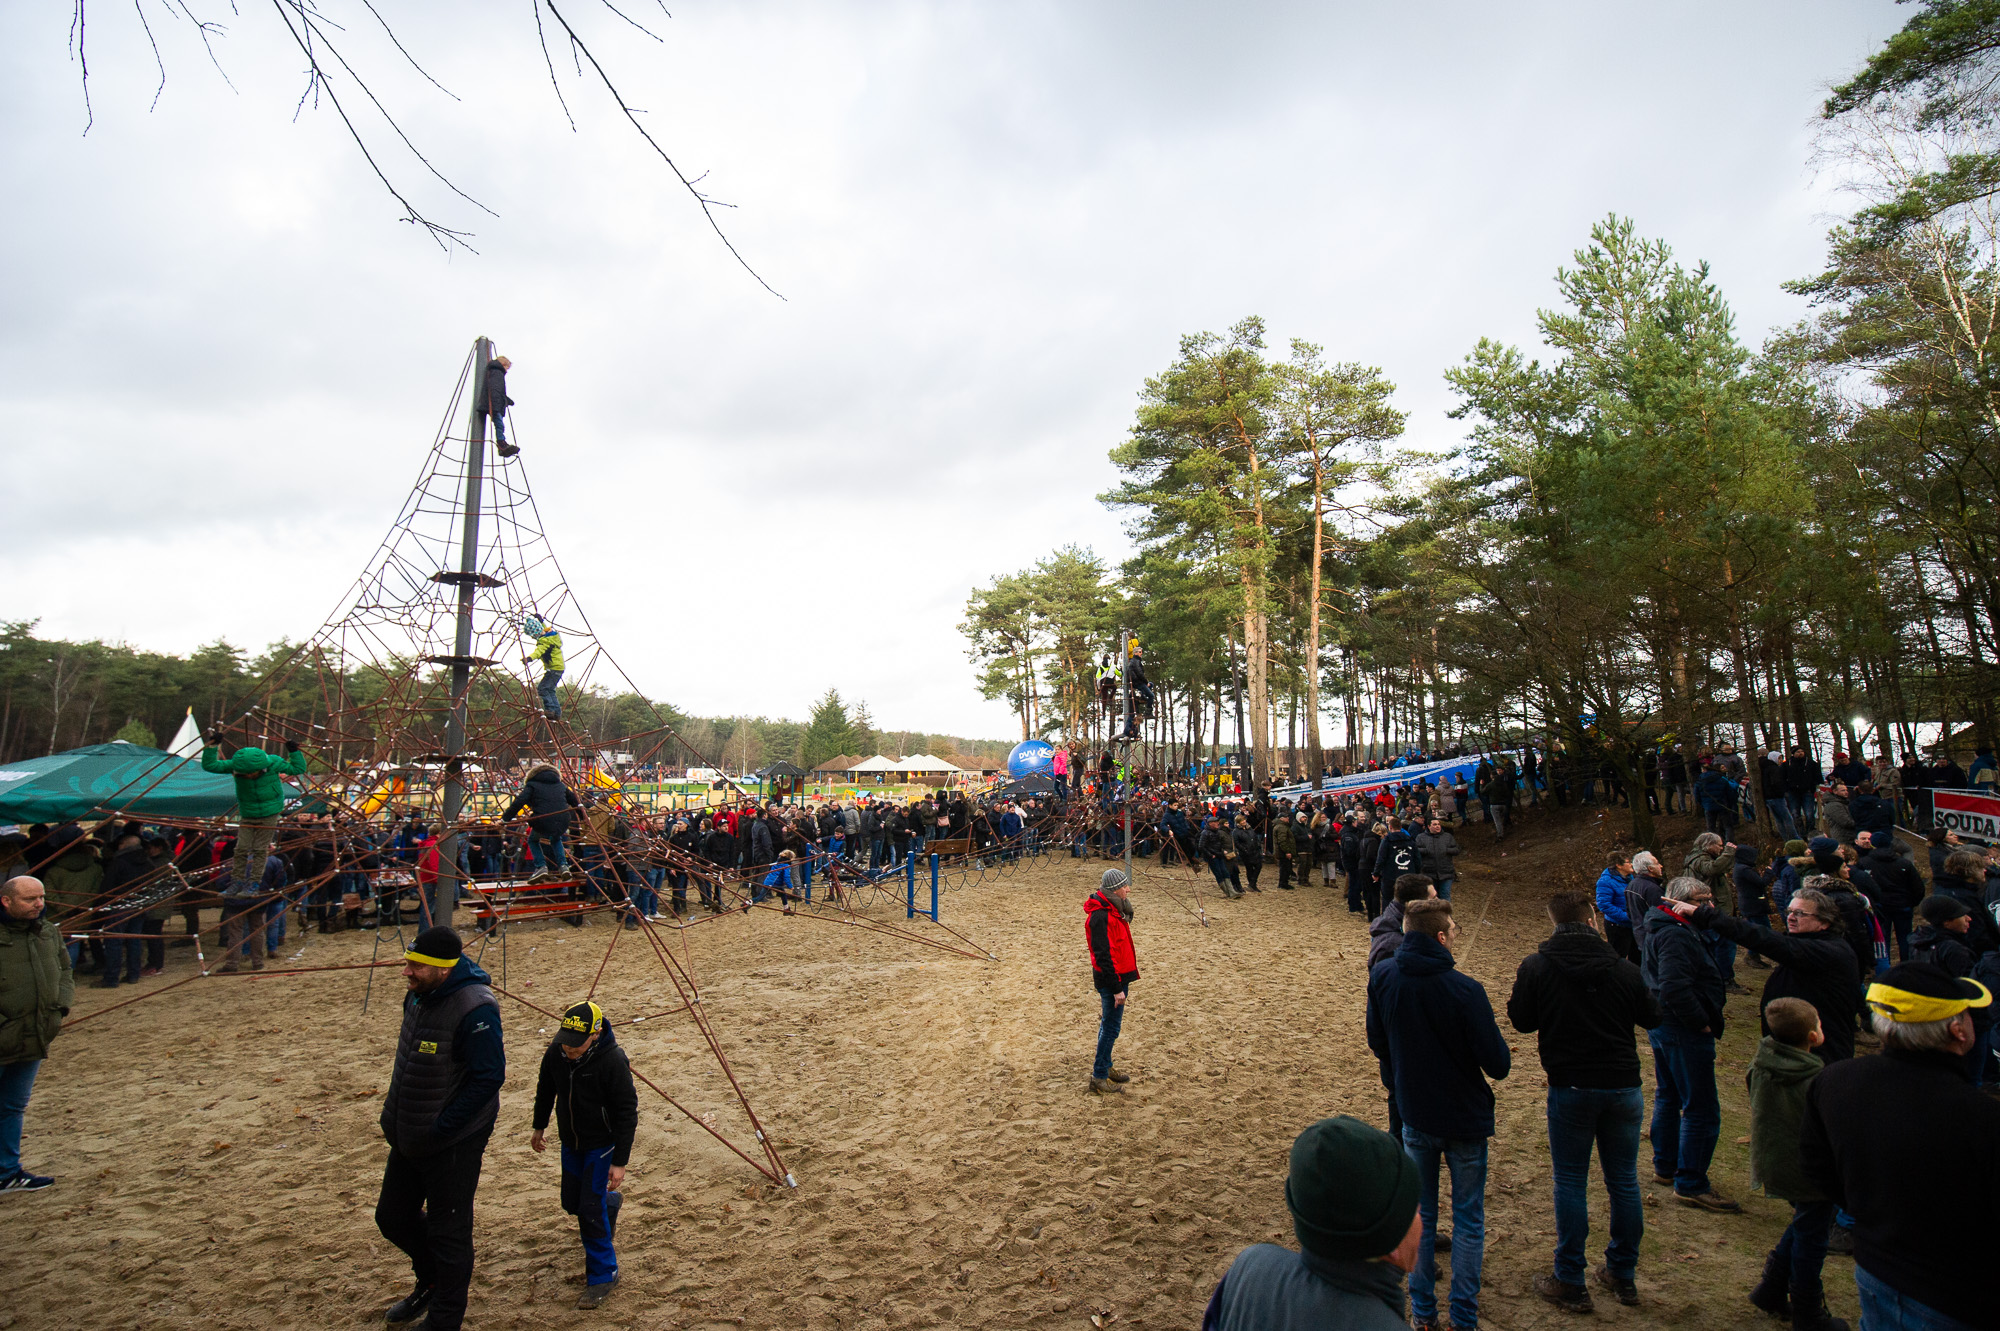 Krawatencross is held at Lisle de Bergen, a campground and recreation park in Lille, Belgium.